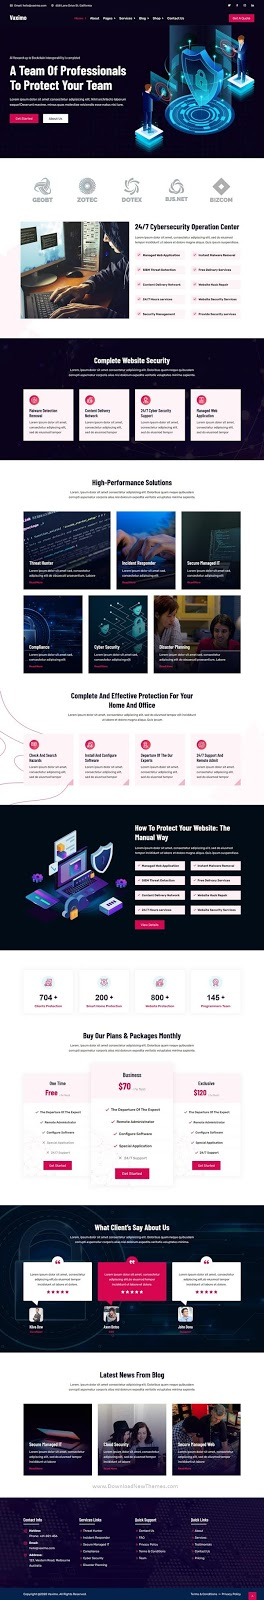 Cyber Security Company WordPress Template